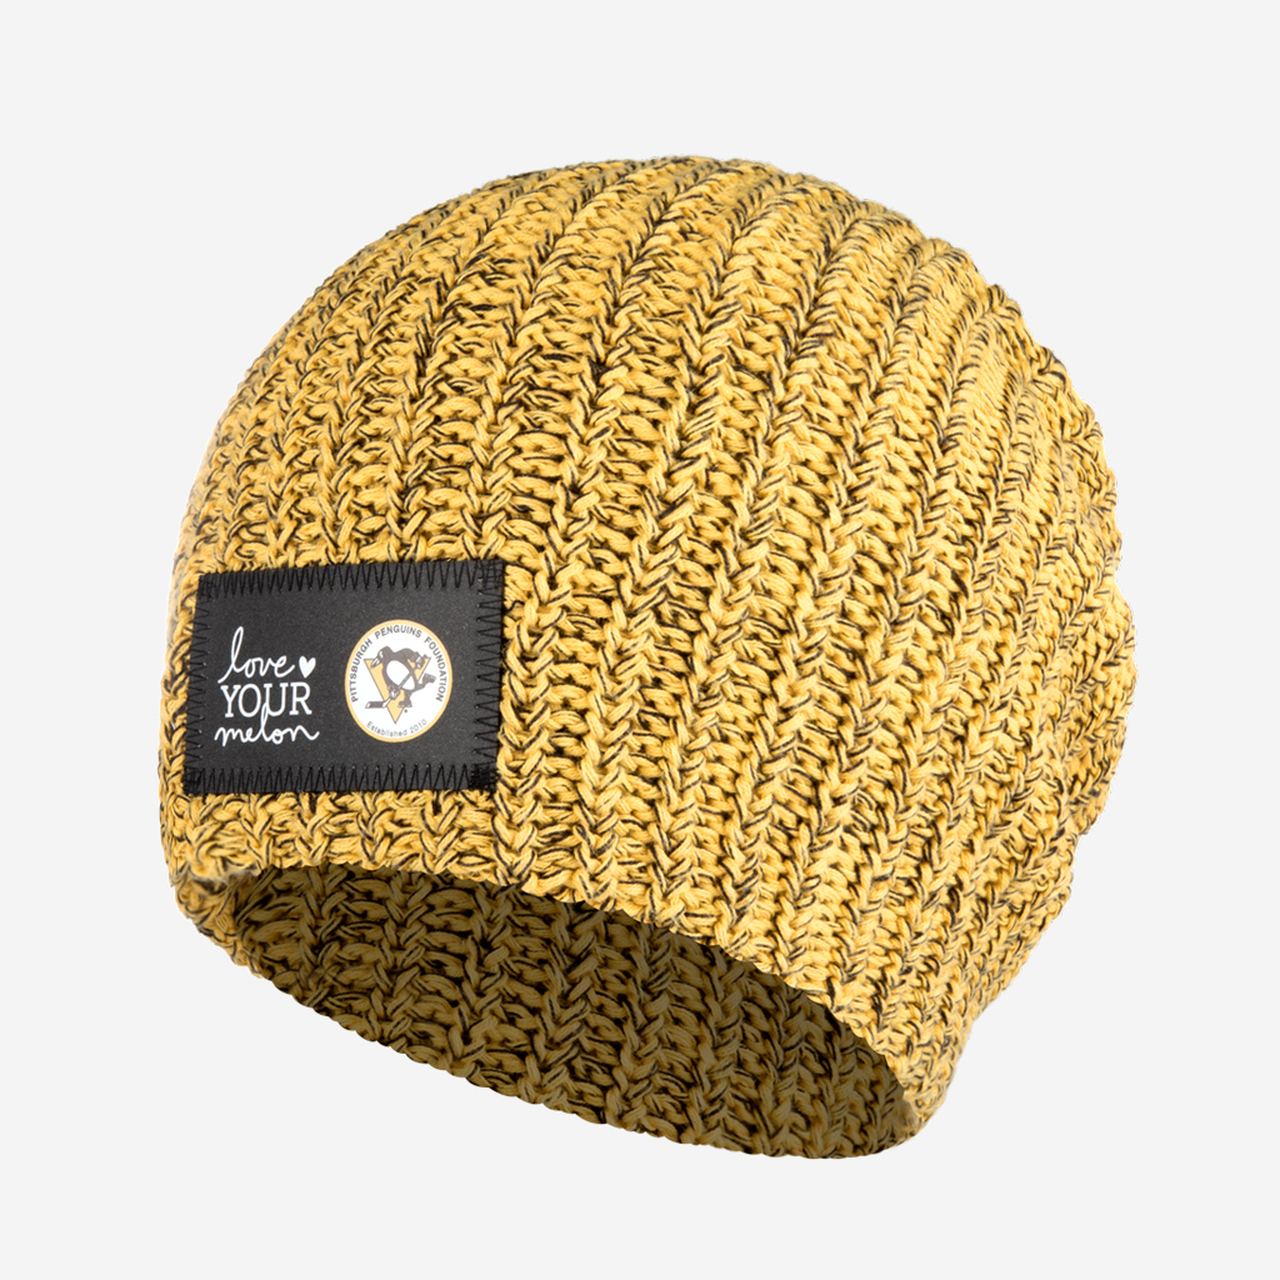 Pittsburgh Penguins Love Your Melon Beanie - Wendell August Forge 6c8e252e669